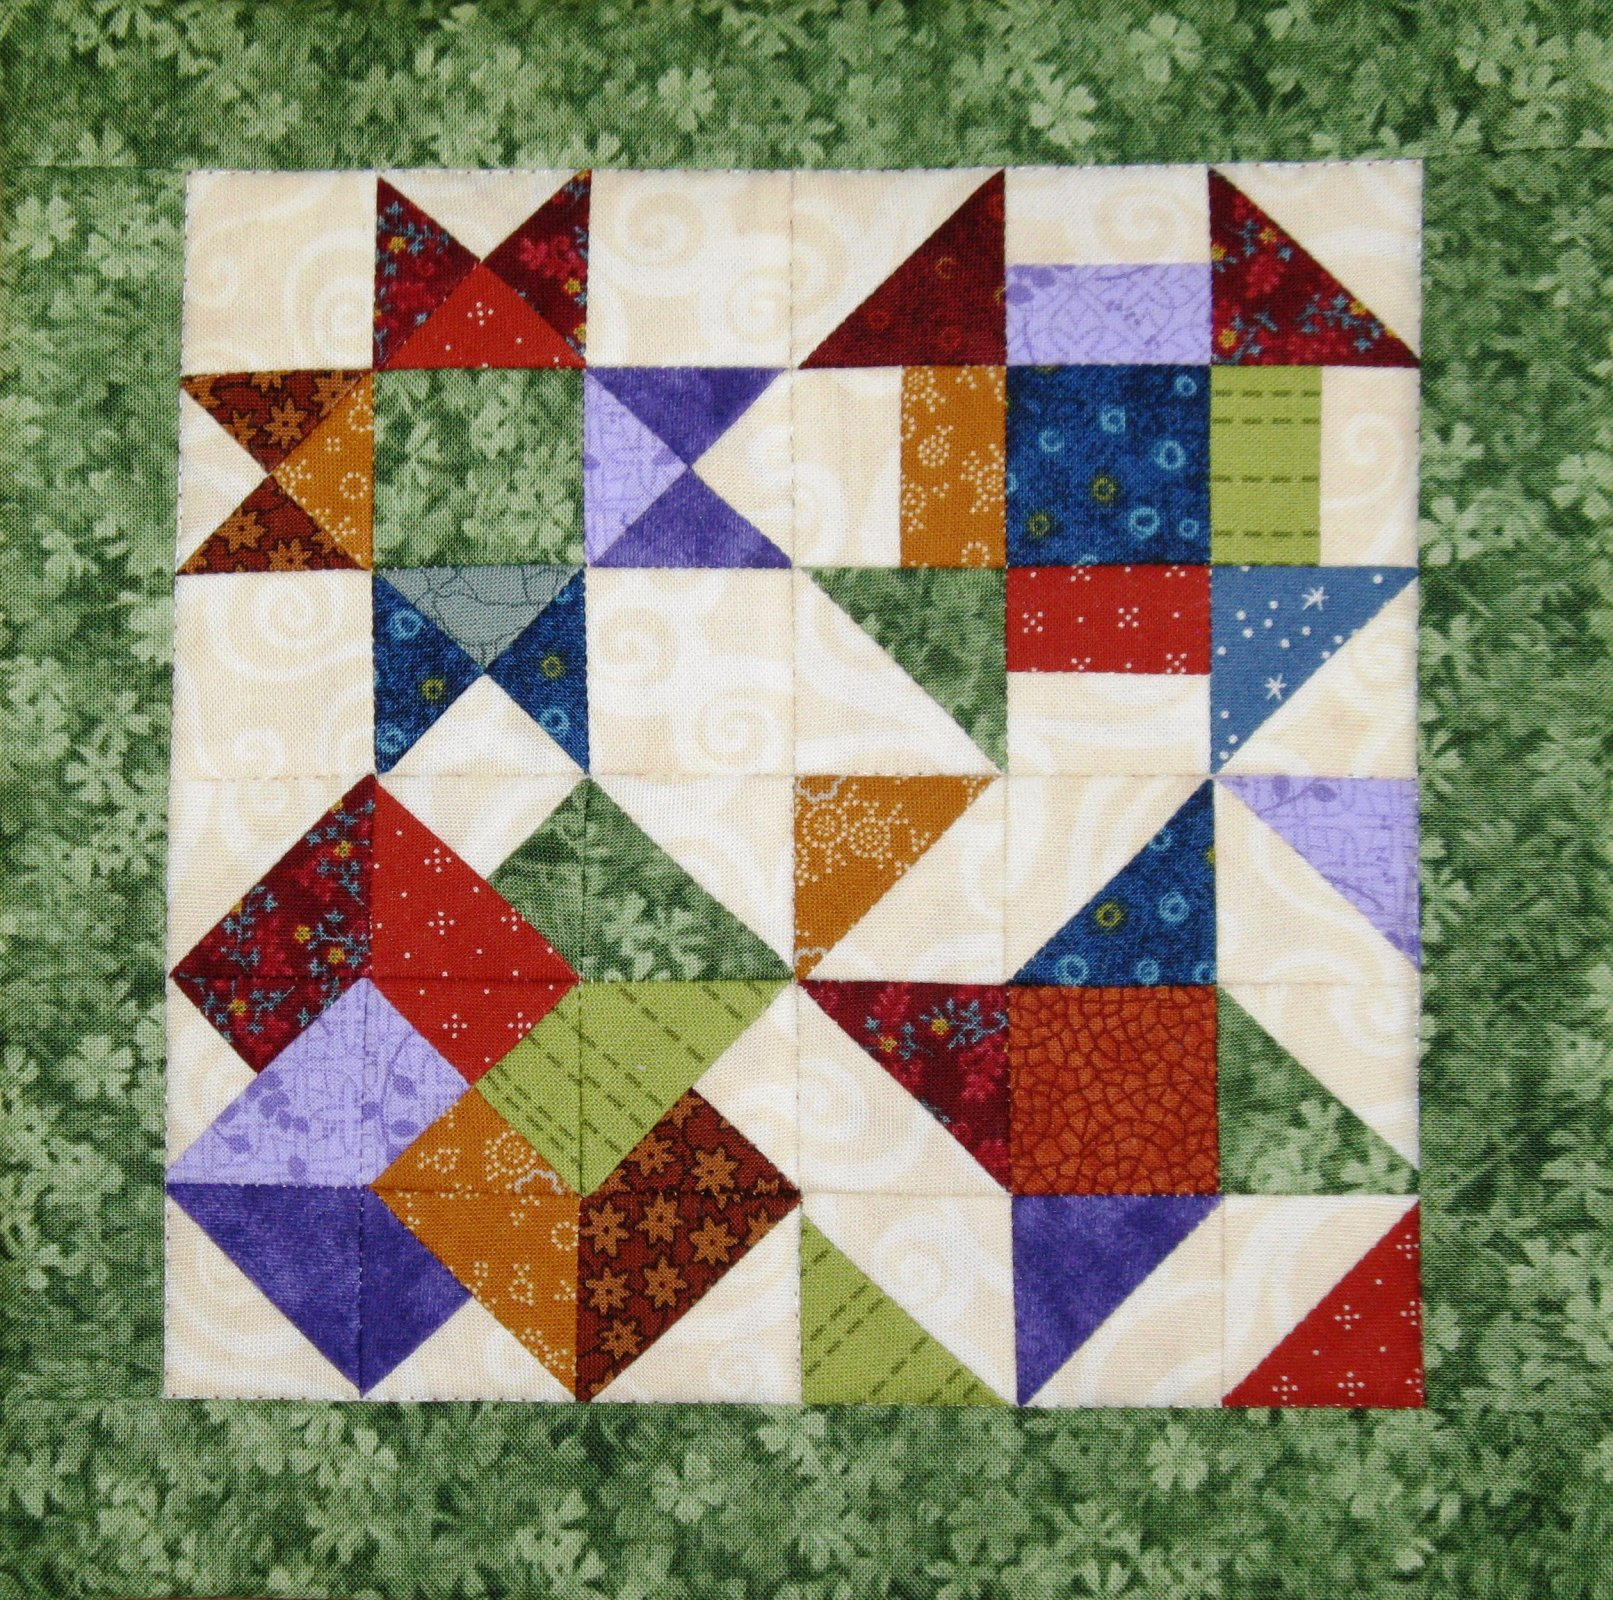 how to make a mosaic quilt